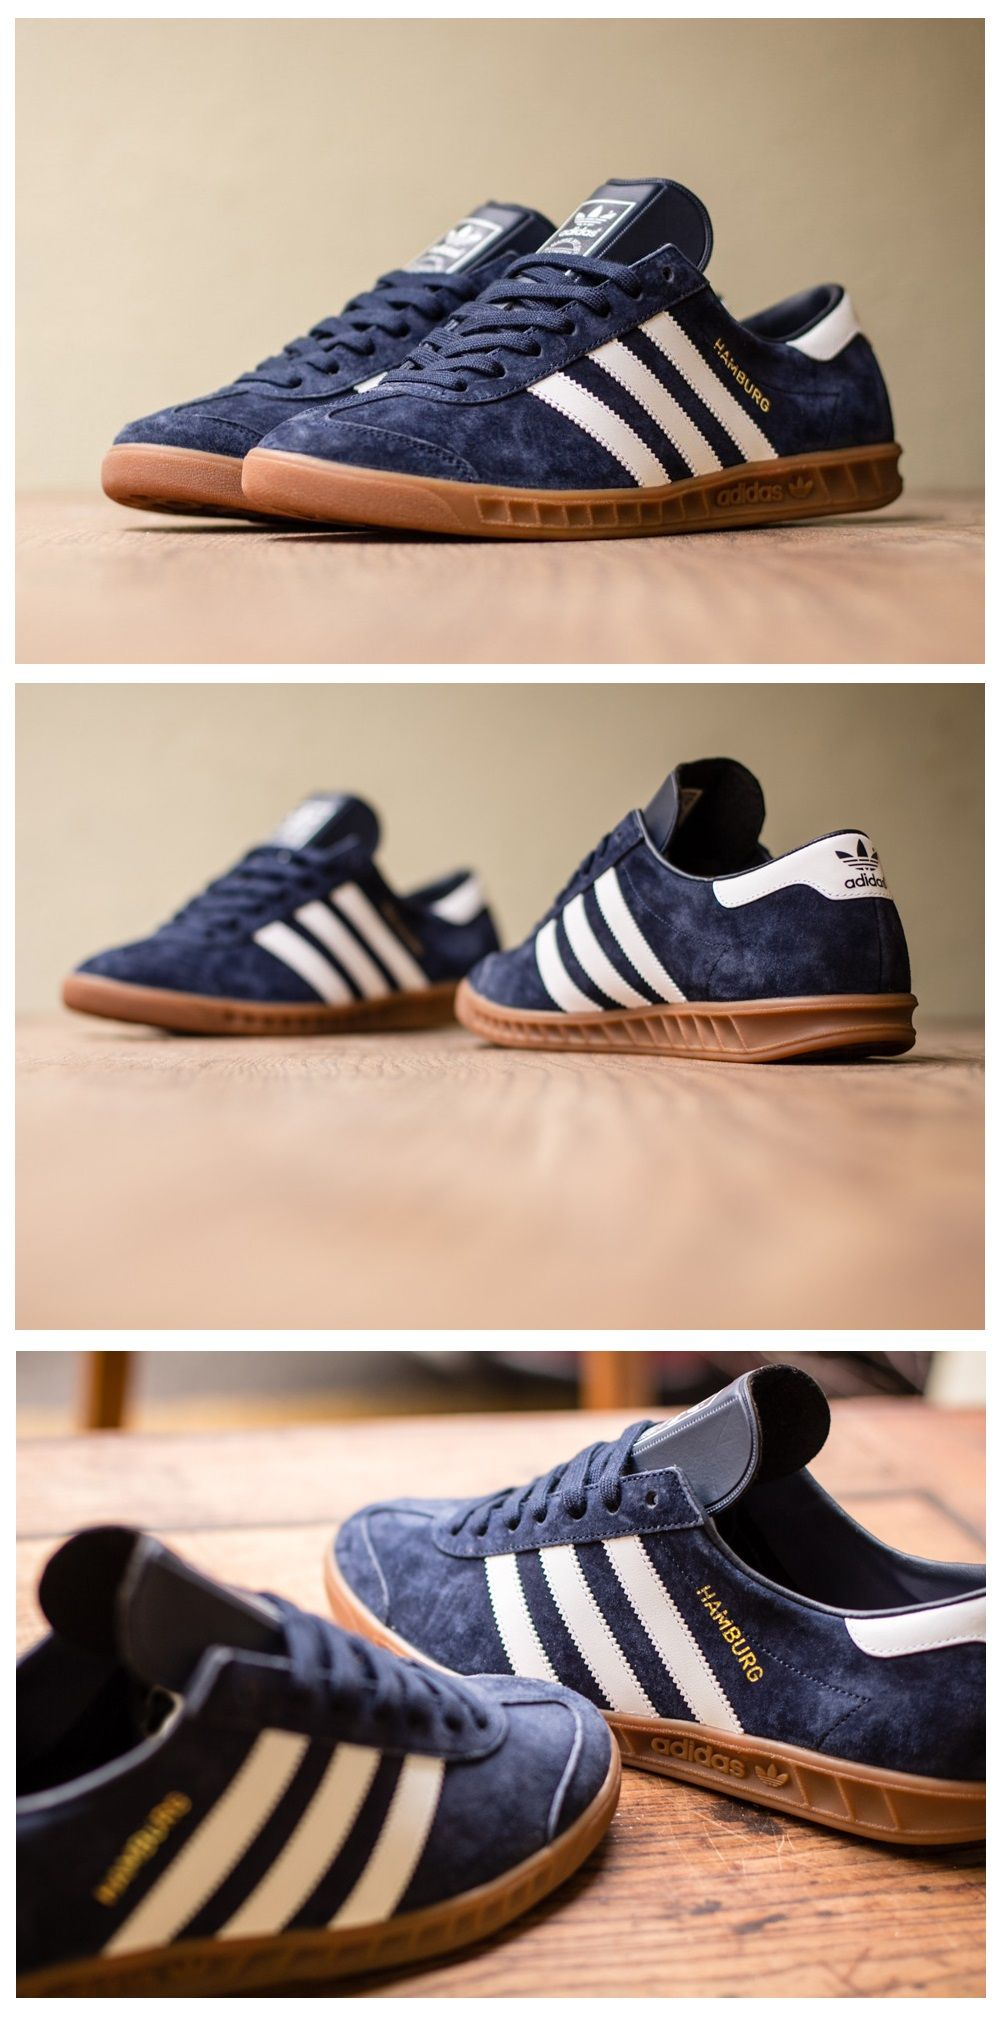 info for da3ed 16a11 adidas Originals Hamburg  Navy Suede Adidas Retro Trainers, Retro Adidas  Shoes, Boys Adidas